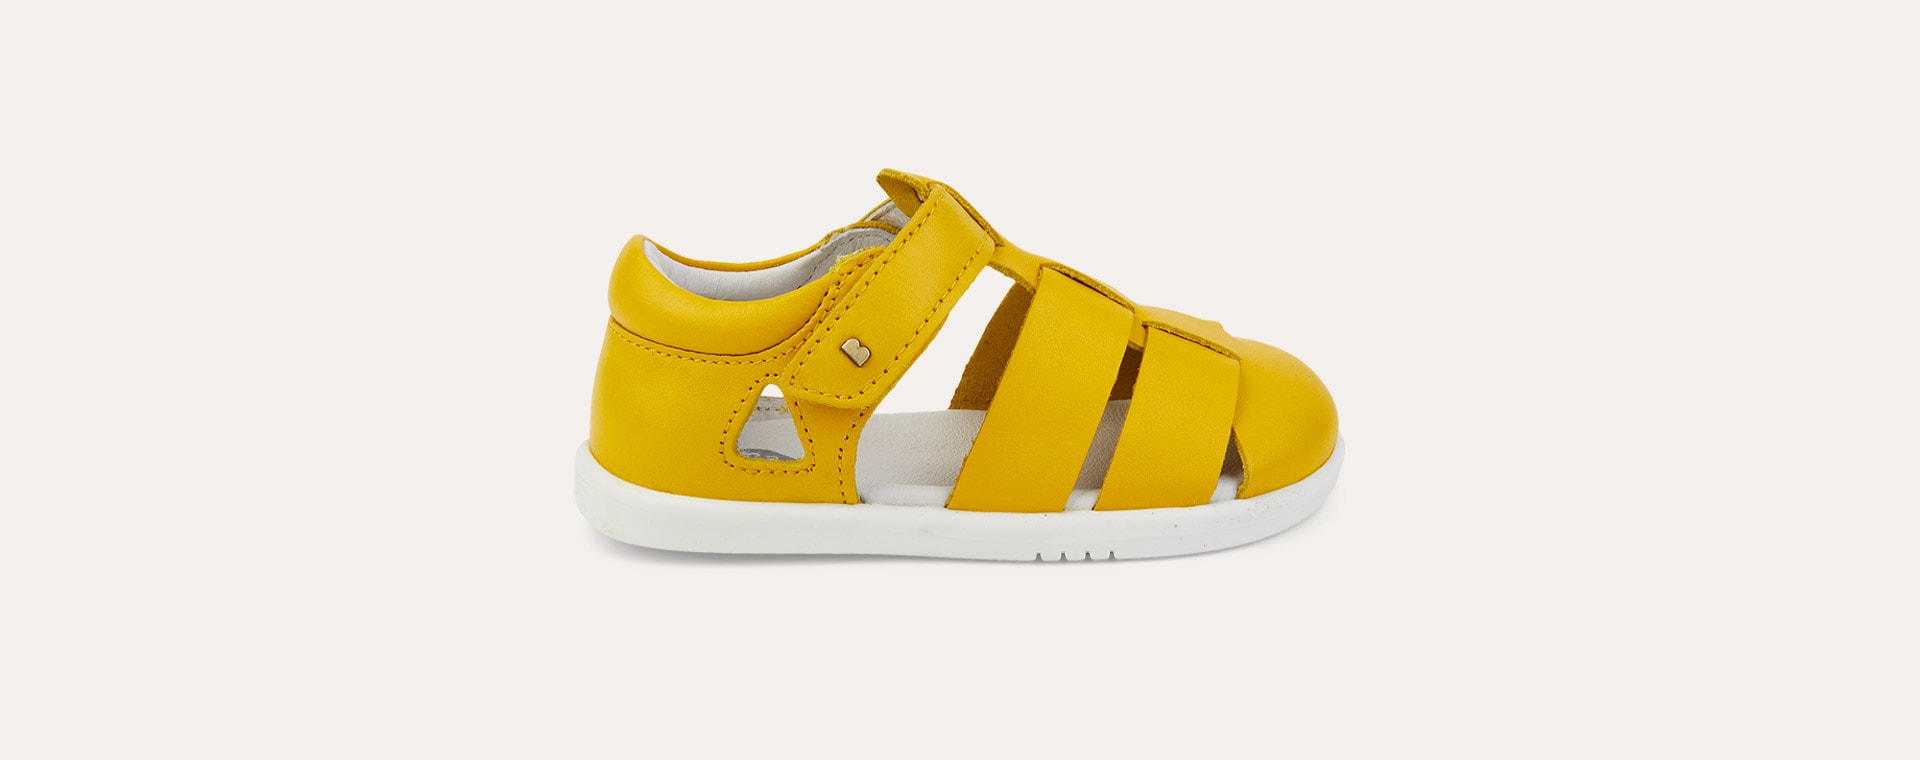 Yellow Bobux I-Walk Tidal Closed Sandal